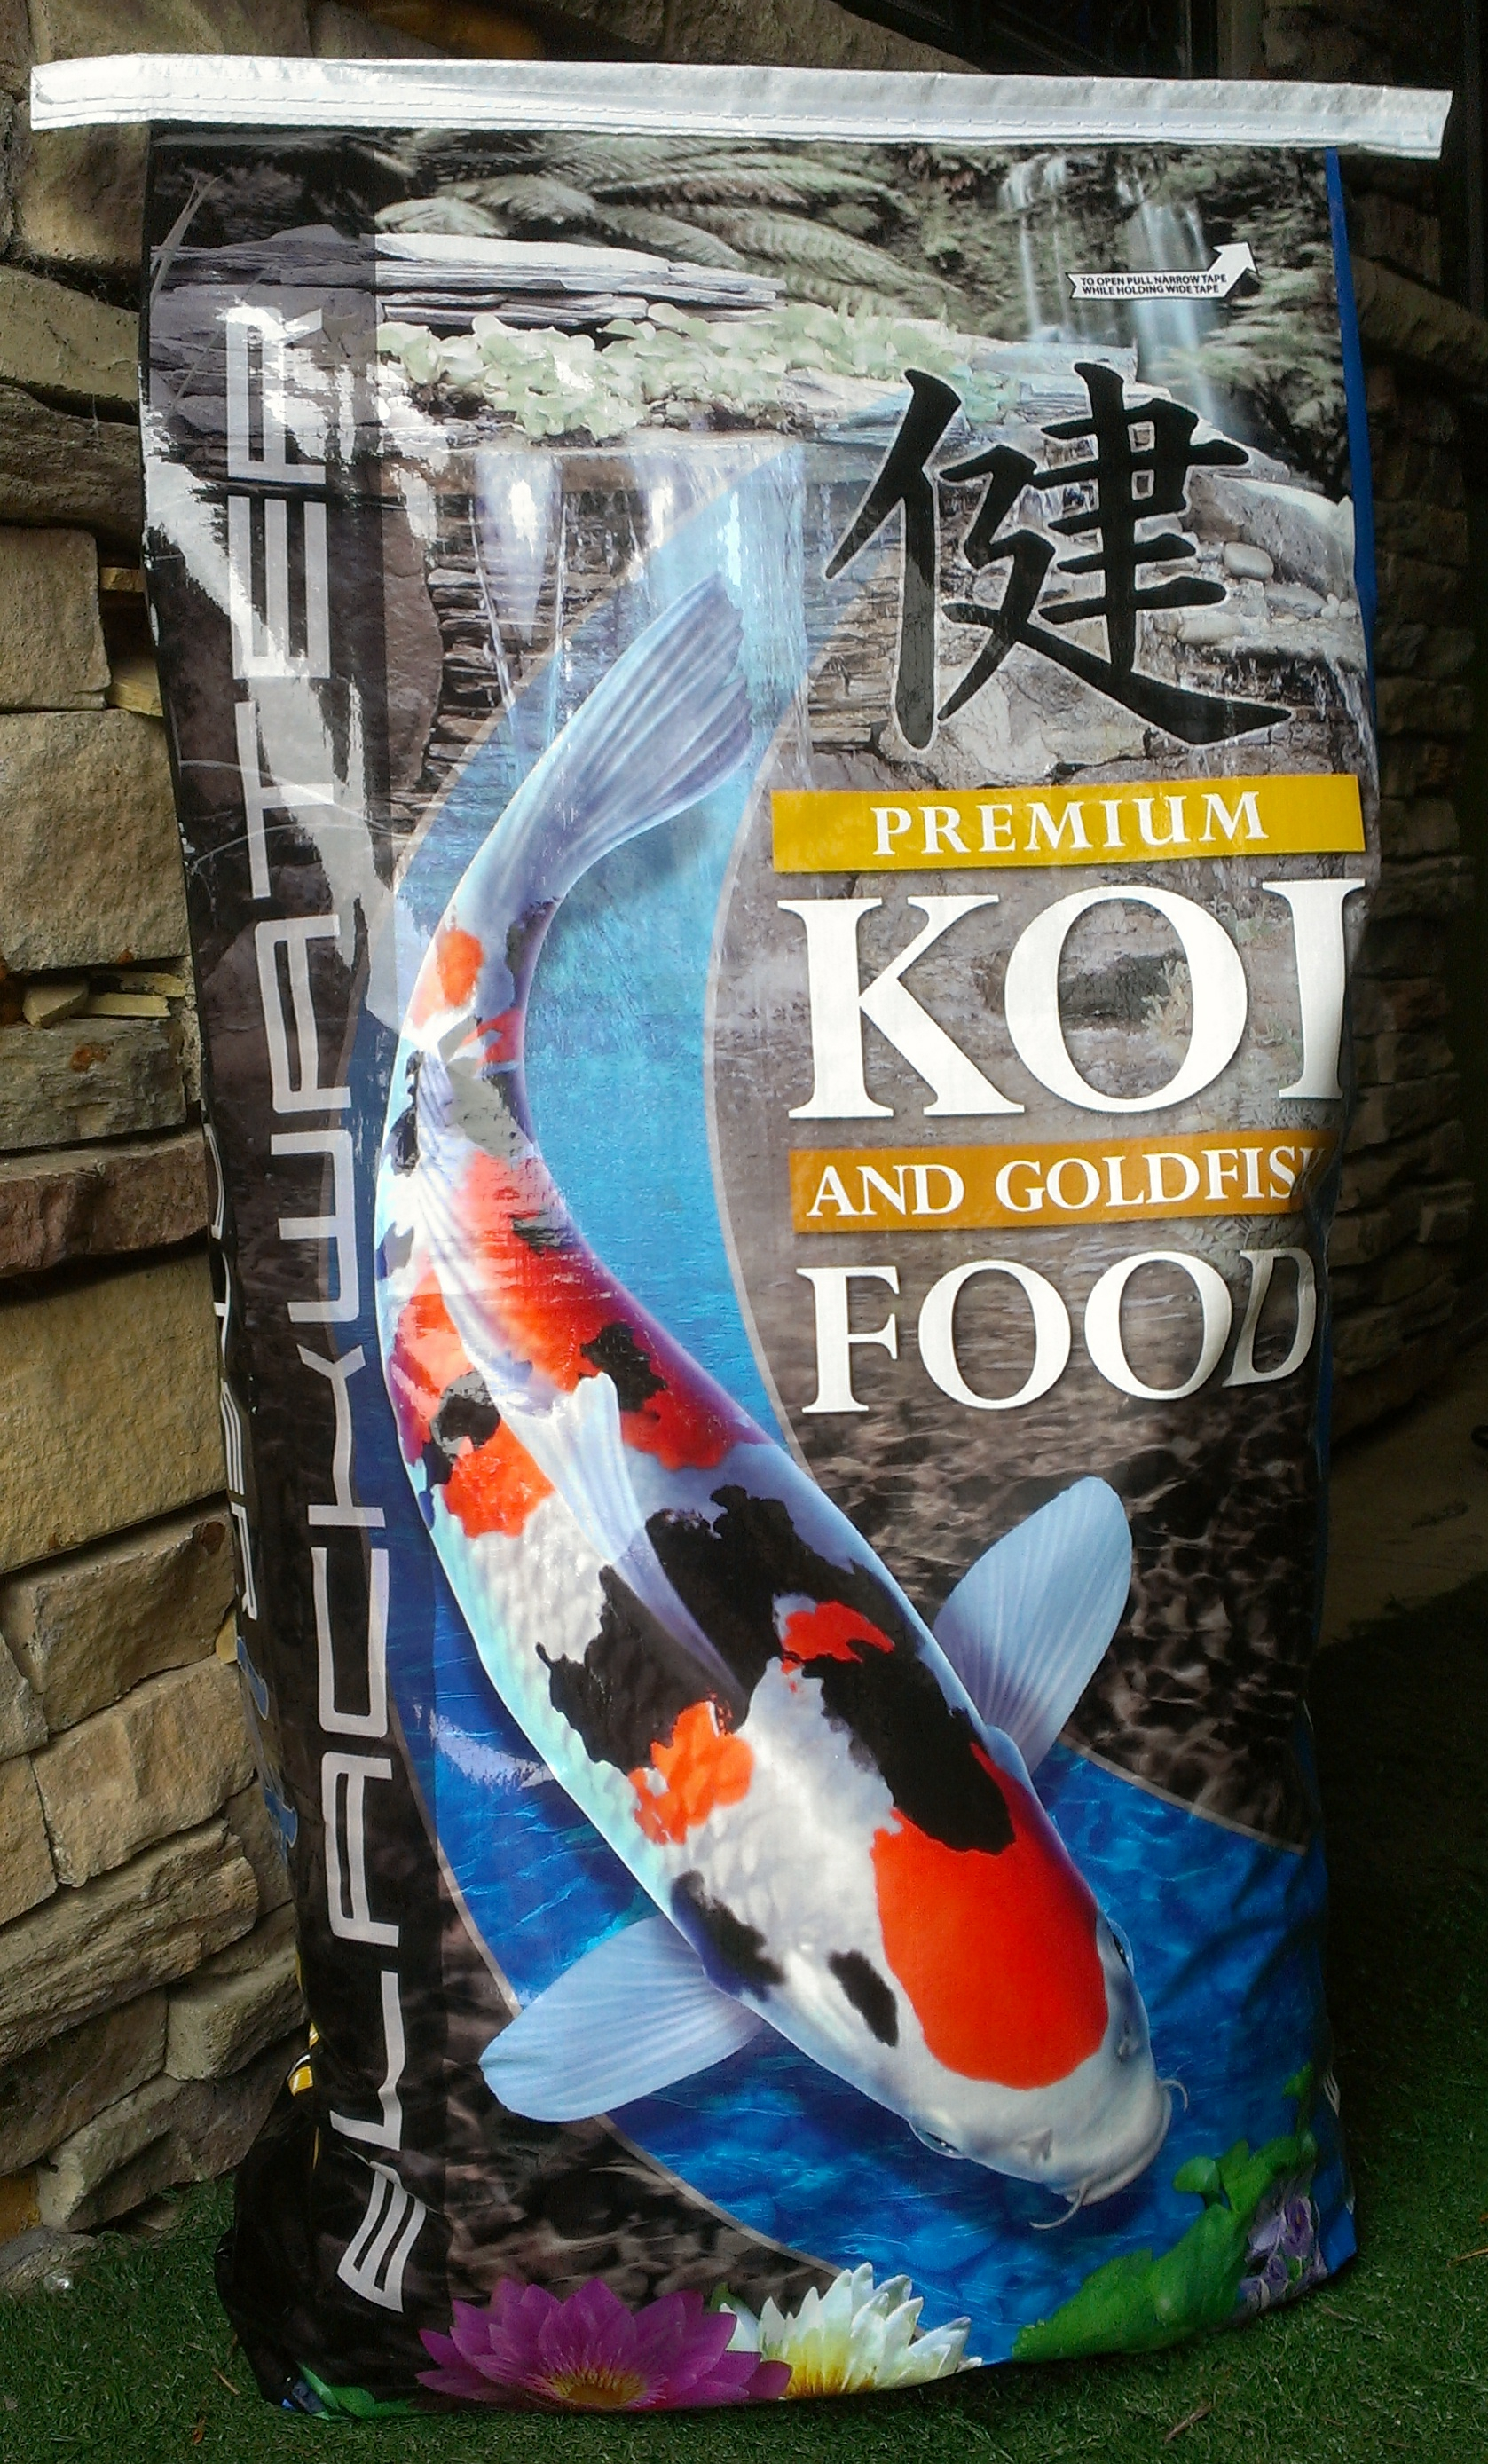 New 40LB Koi Food bags